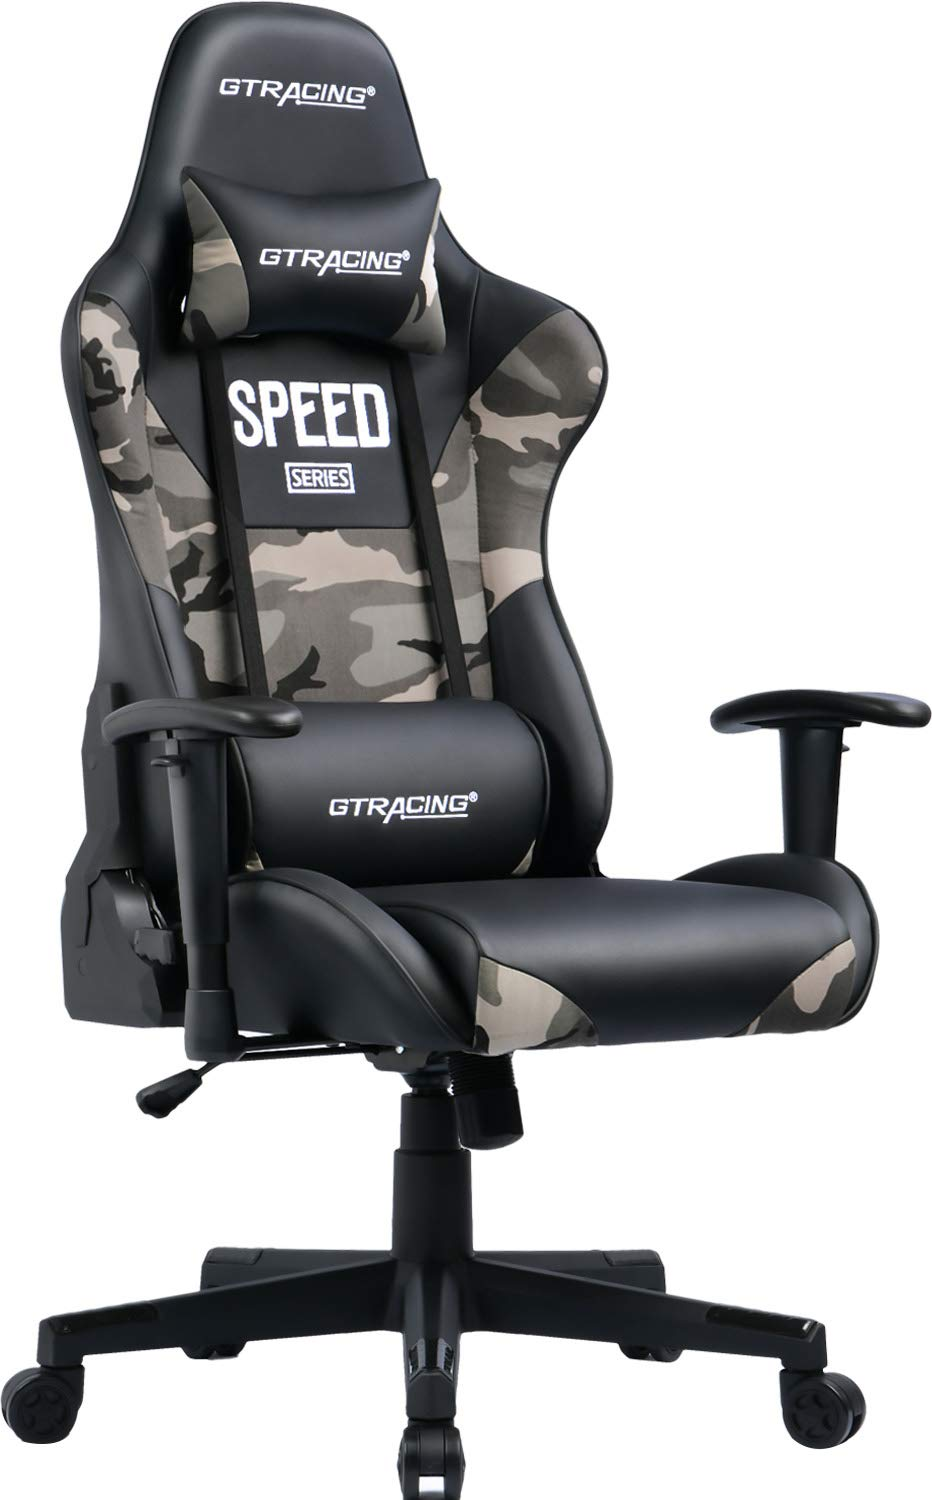 GTRACING Camouflage Gaming Chair Computer Racing Chair PU &Fabric High Back Backrest and Height Adjustable E-Sports Ergonomic Chair with Pillows GT000 (Black/Camo) by GTRACING